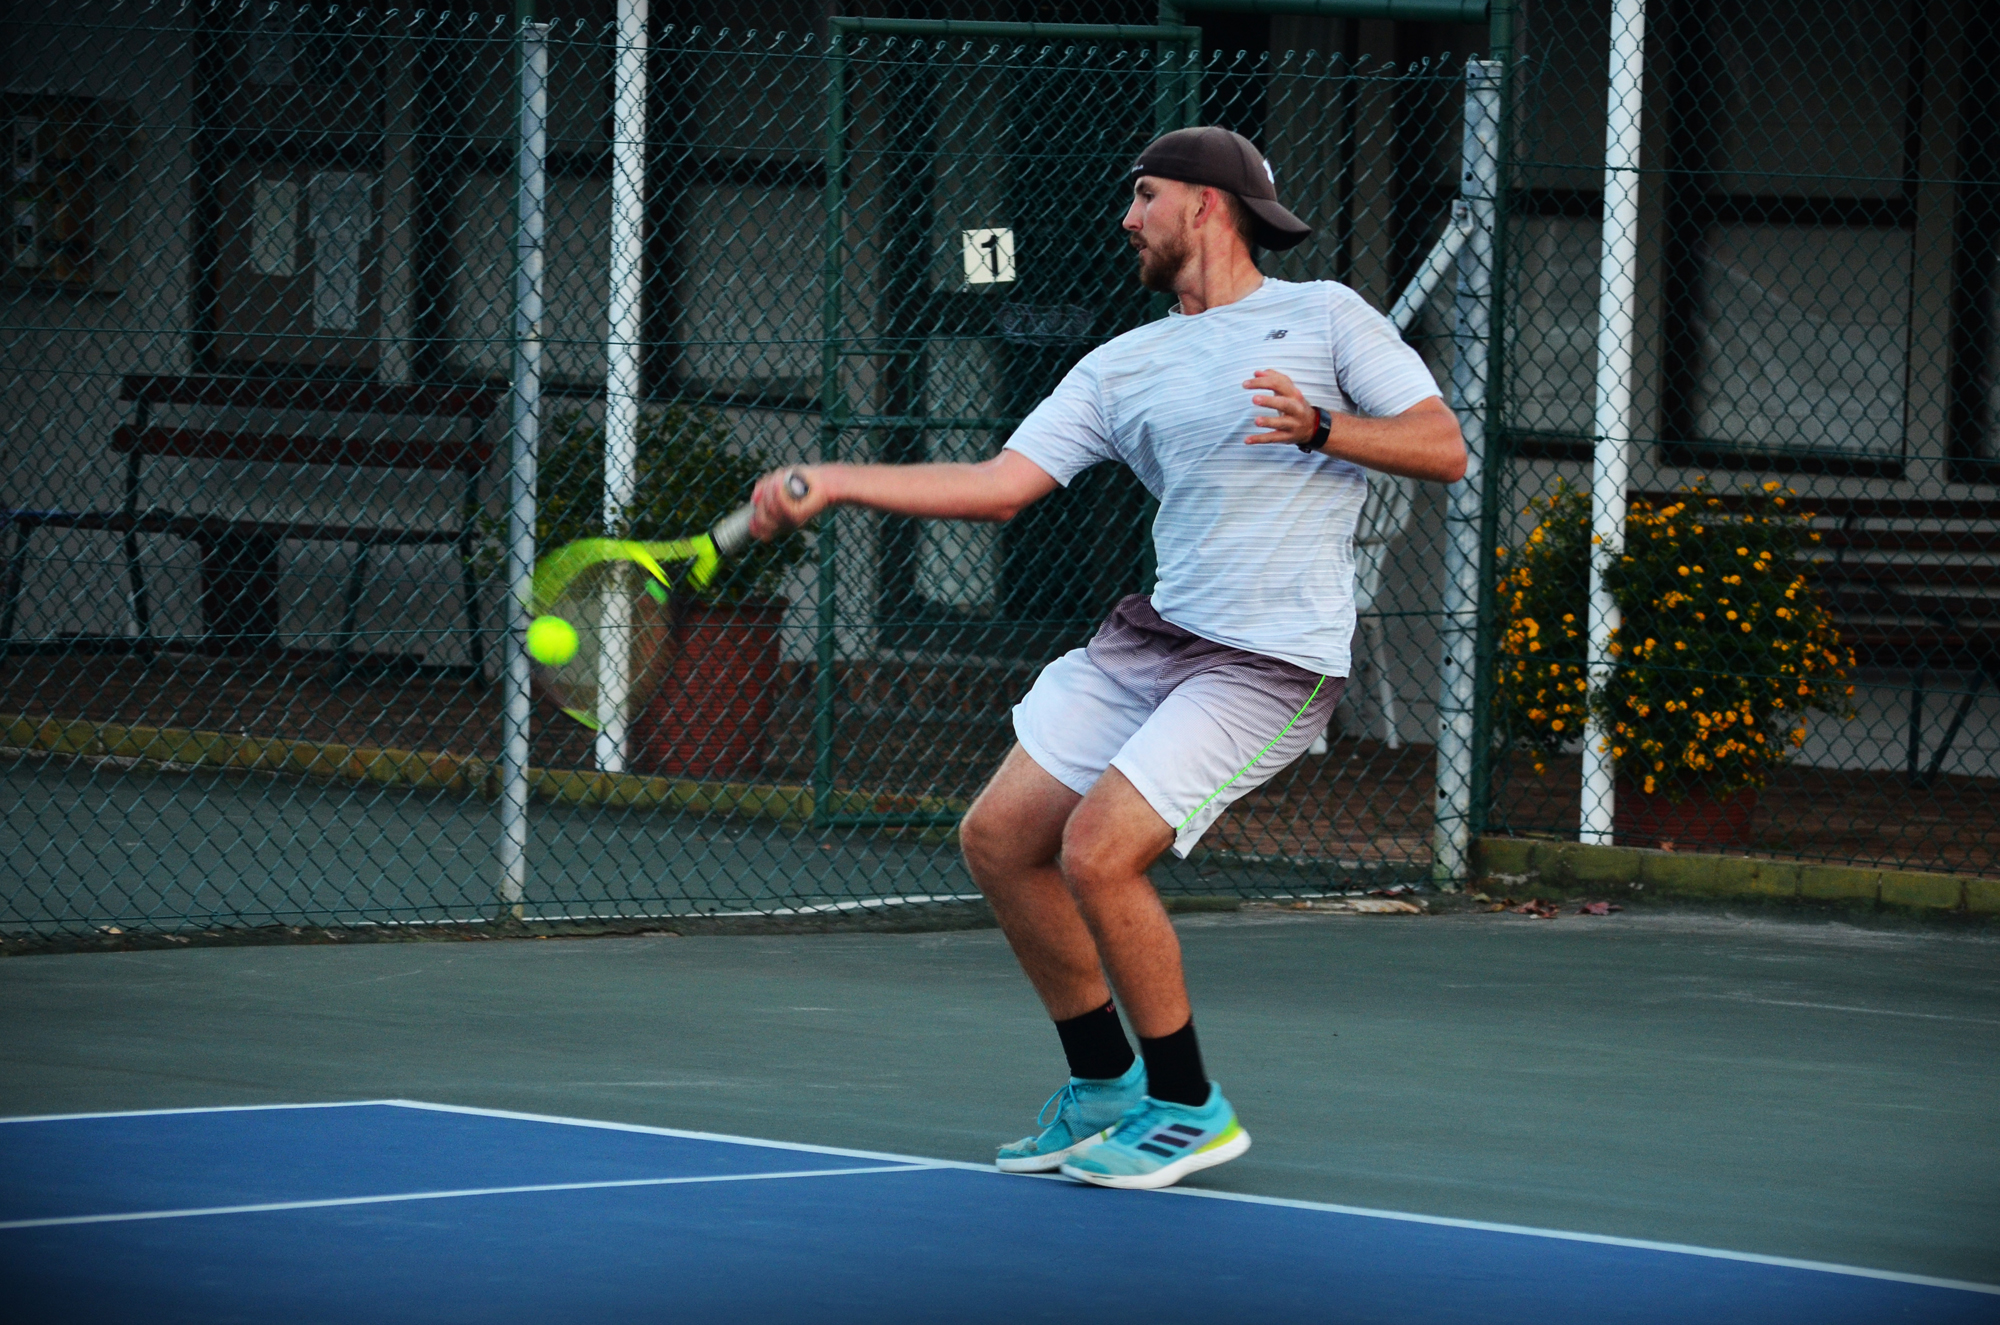 Mike forehand